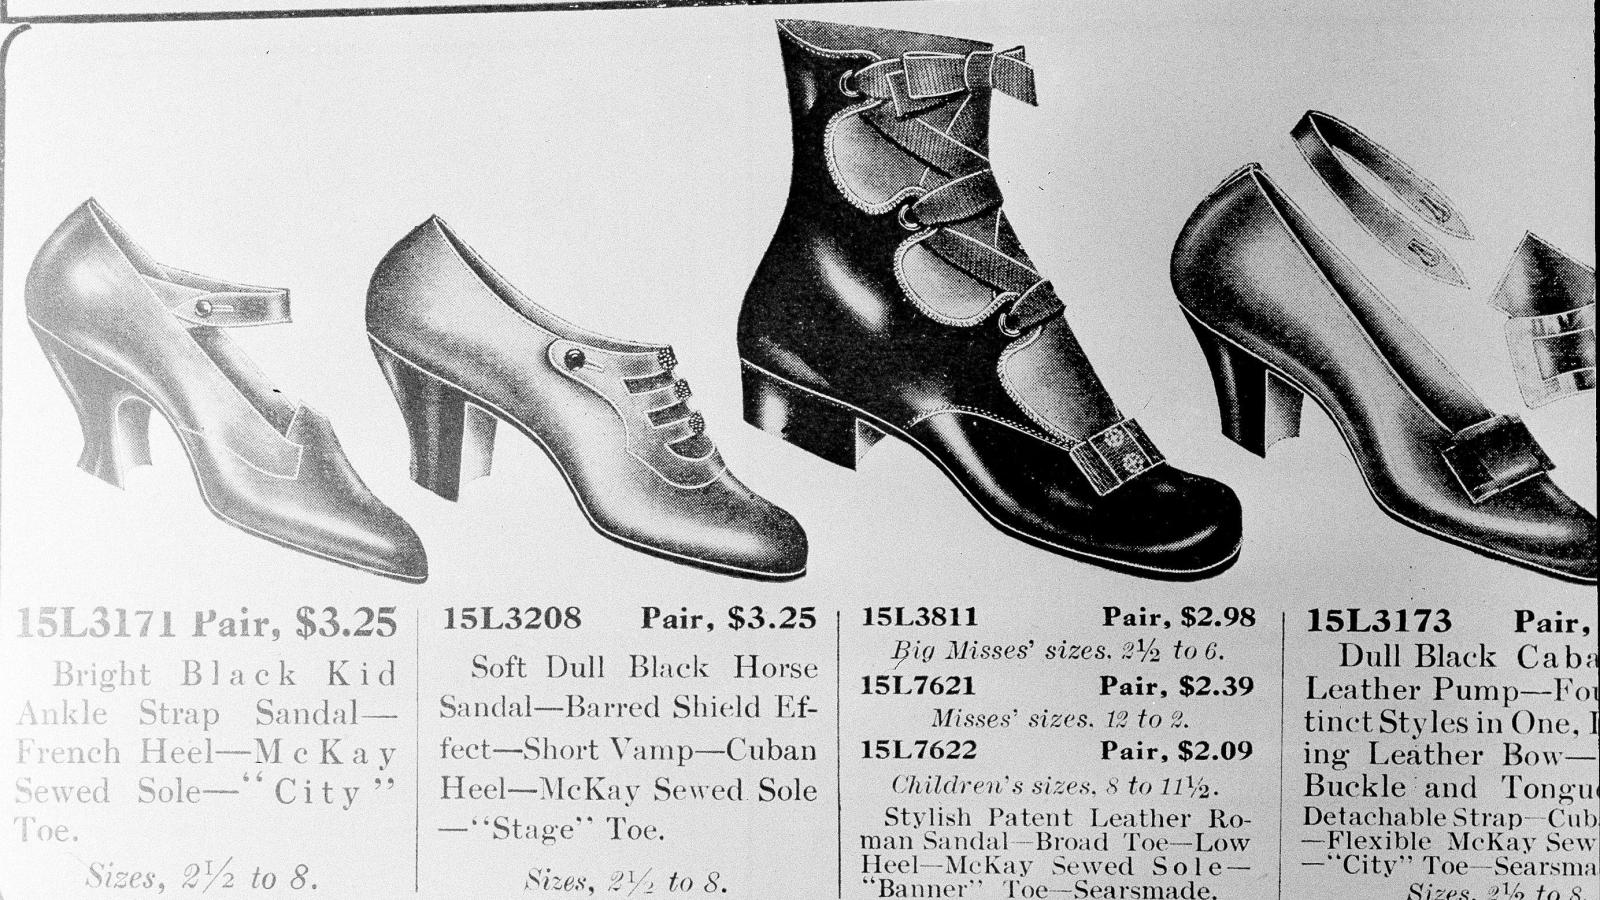 The Sears Mail Order Catalogue Subverted Jim Crow Era Racism Quartz At Work